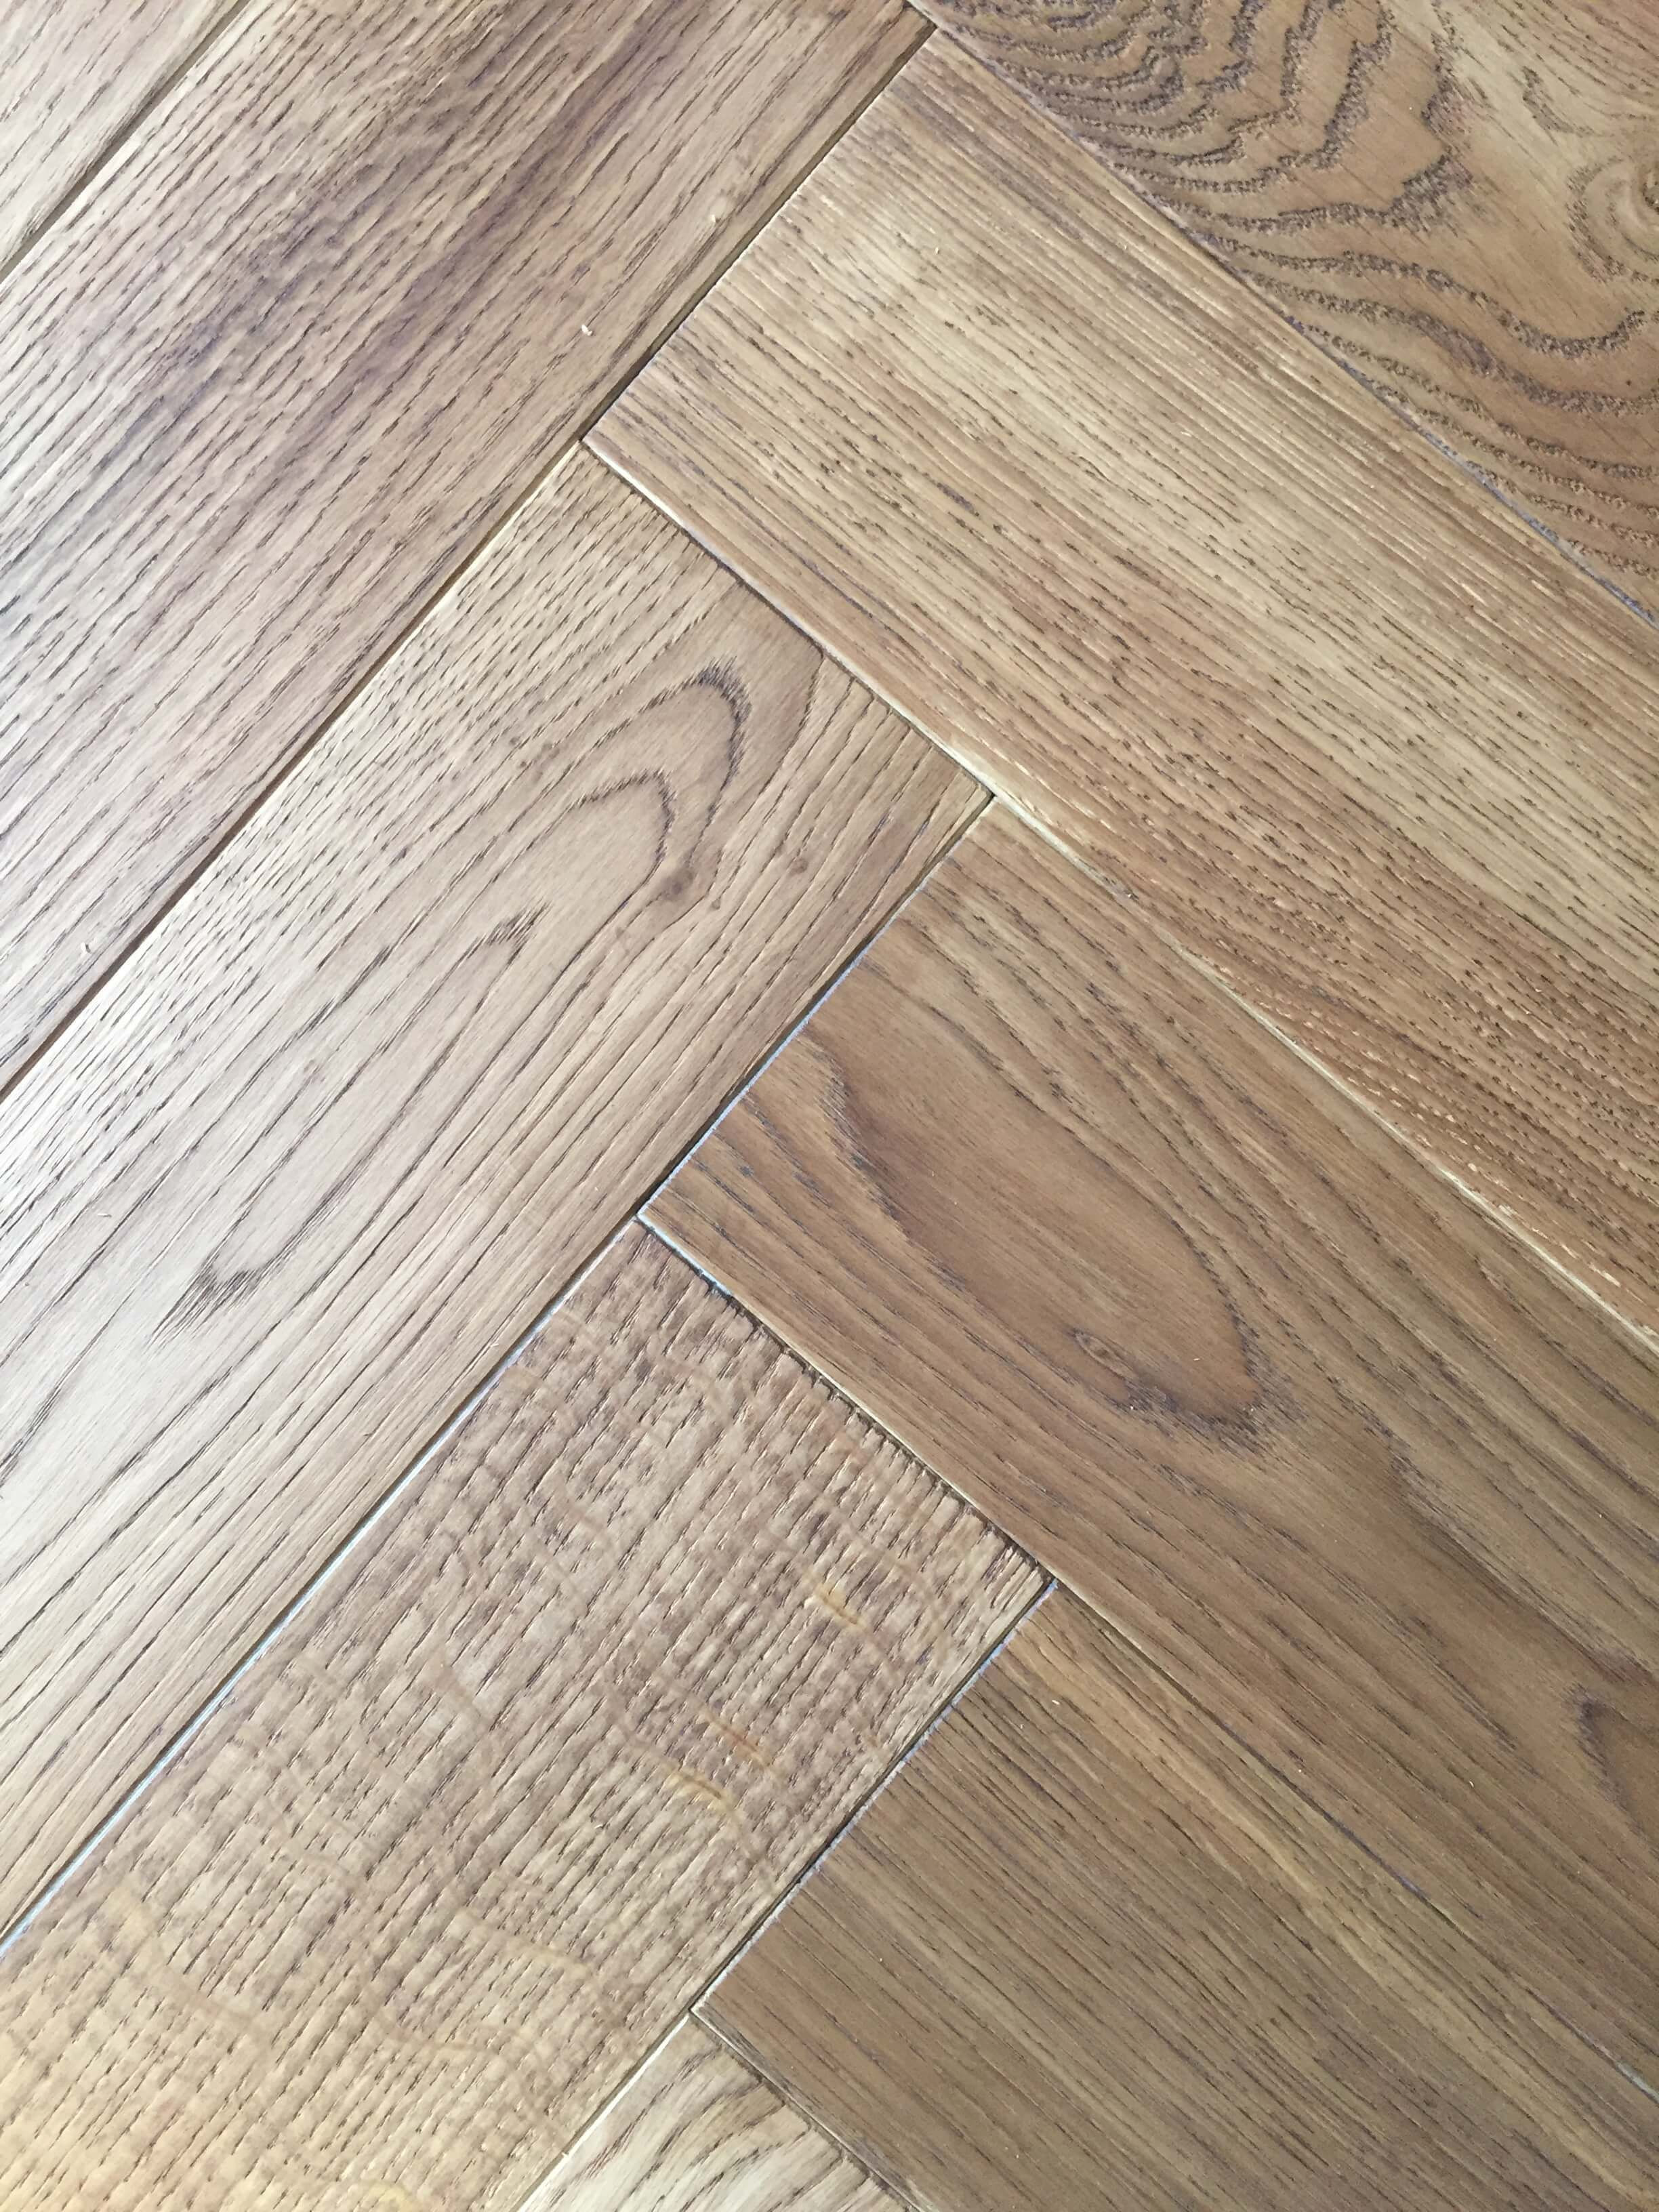 10 Recommended Hardwood Flooring Faq 2021 free download hardwood flooring faq of best hardwood floors floor plan ideas regarding best hardwood floors new decorating an open floor plan living room awesome design plan 0d